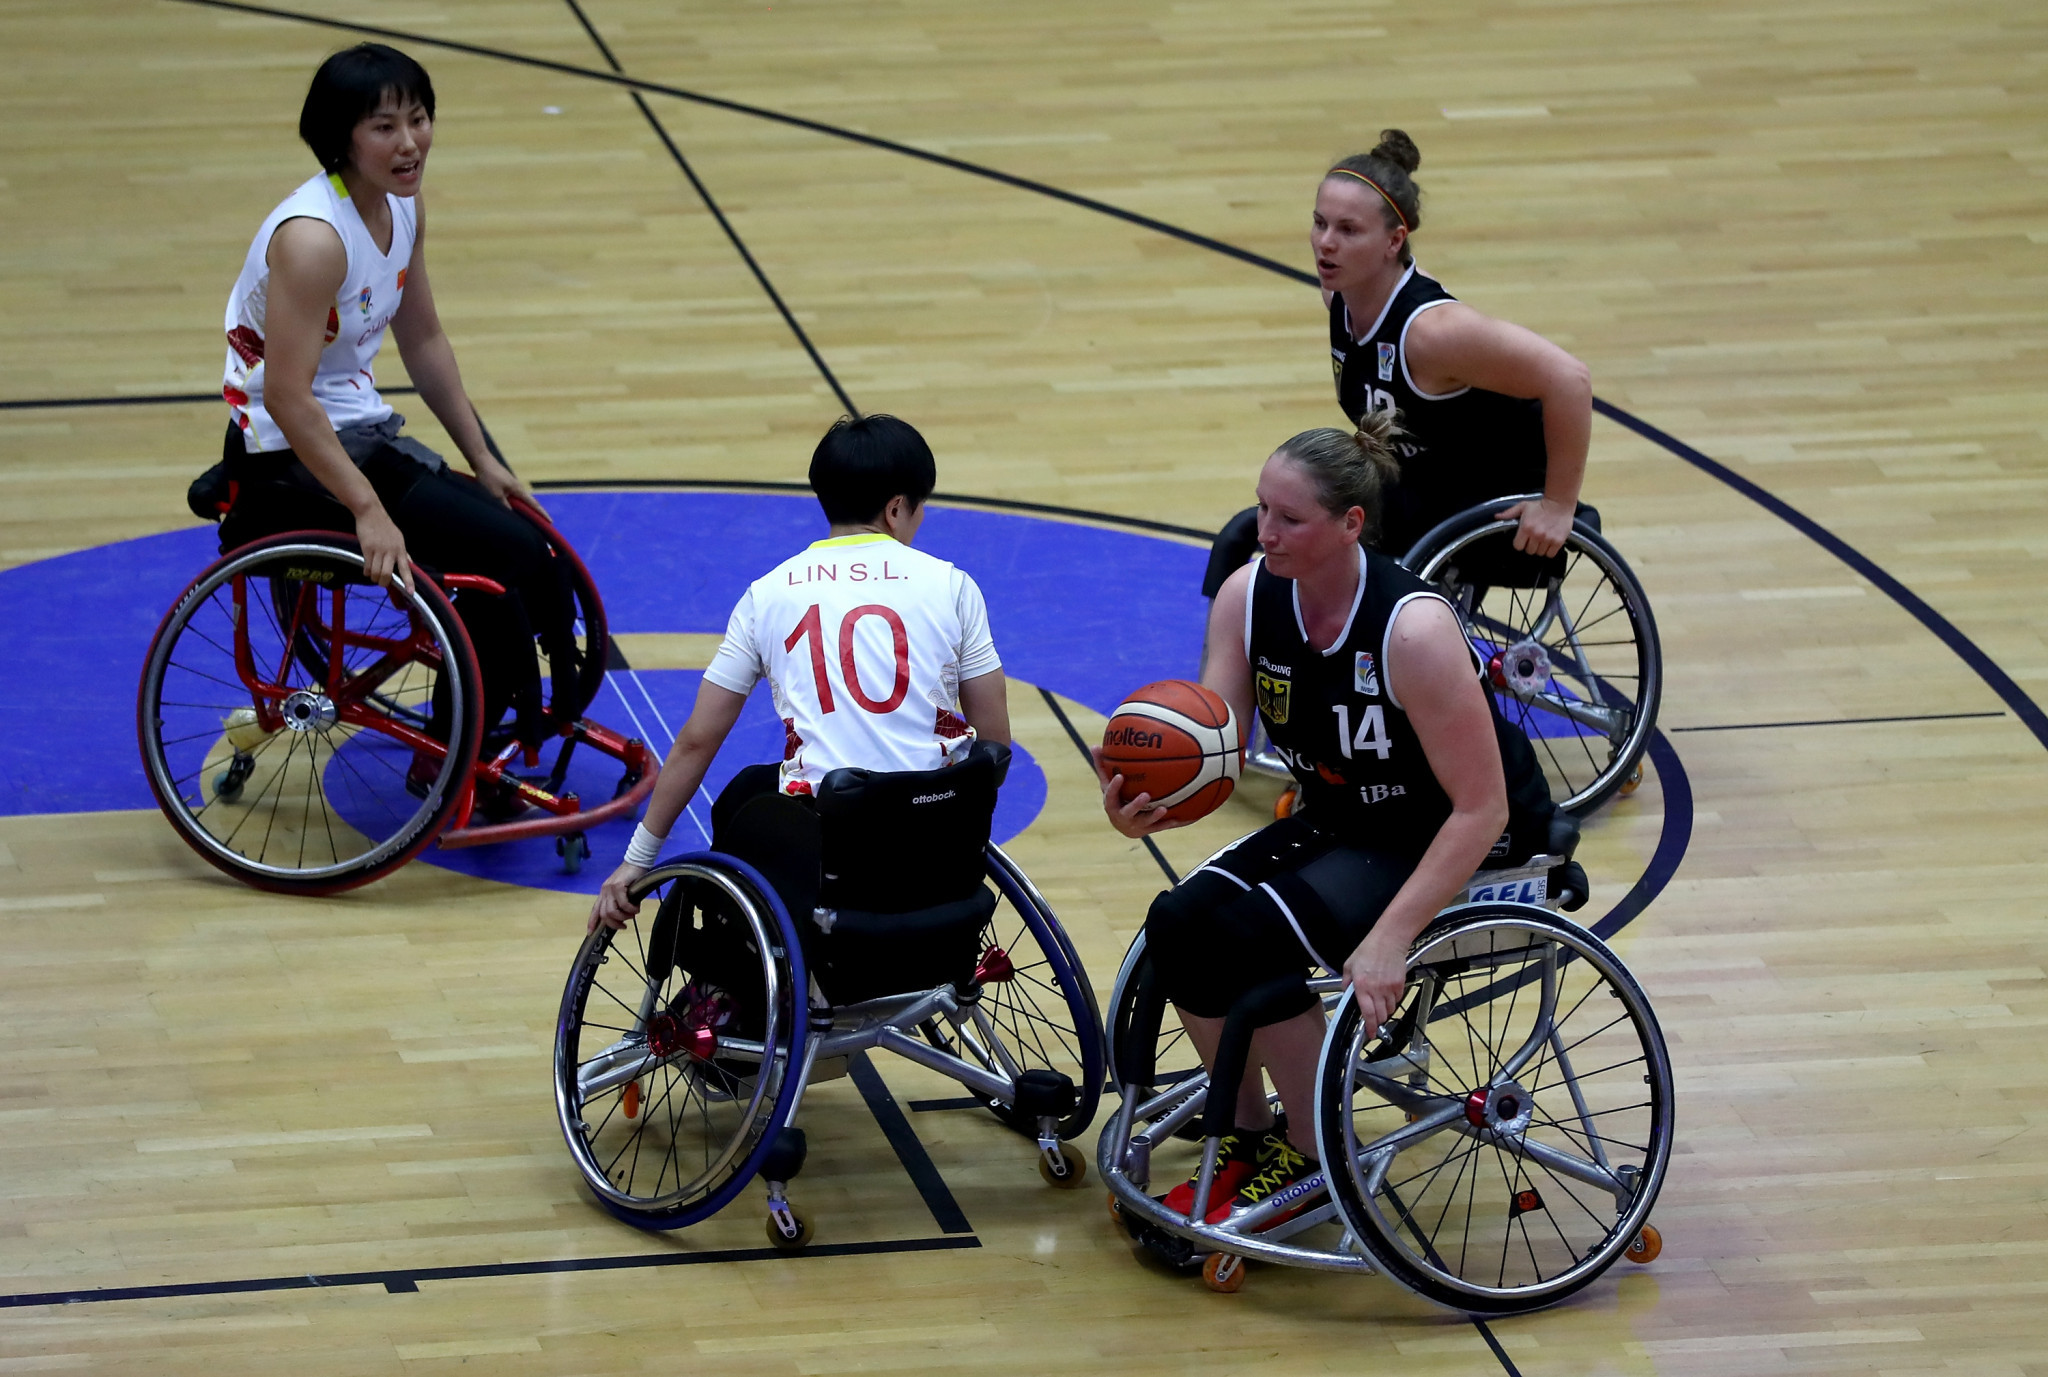 Hans Tukker was praised for his role in the development of wheelchair basketball in Europe and further afield ©Getty Images